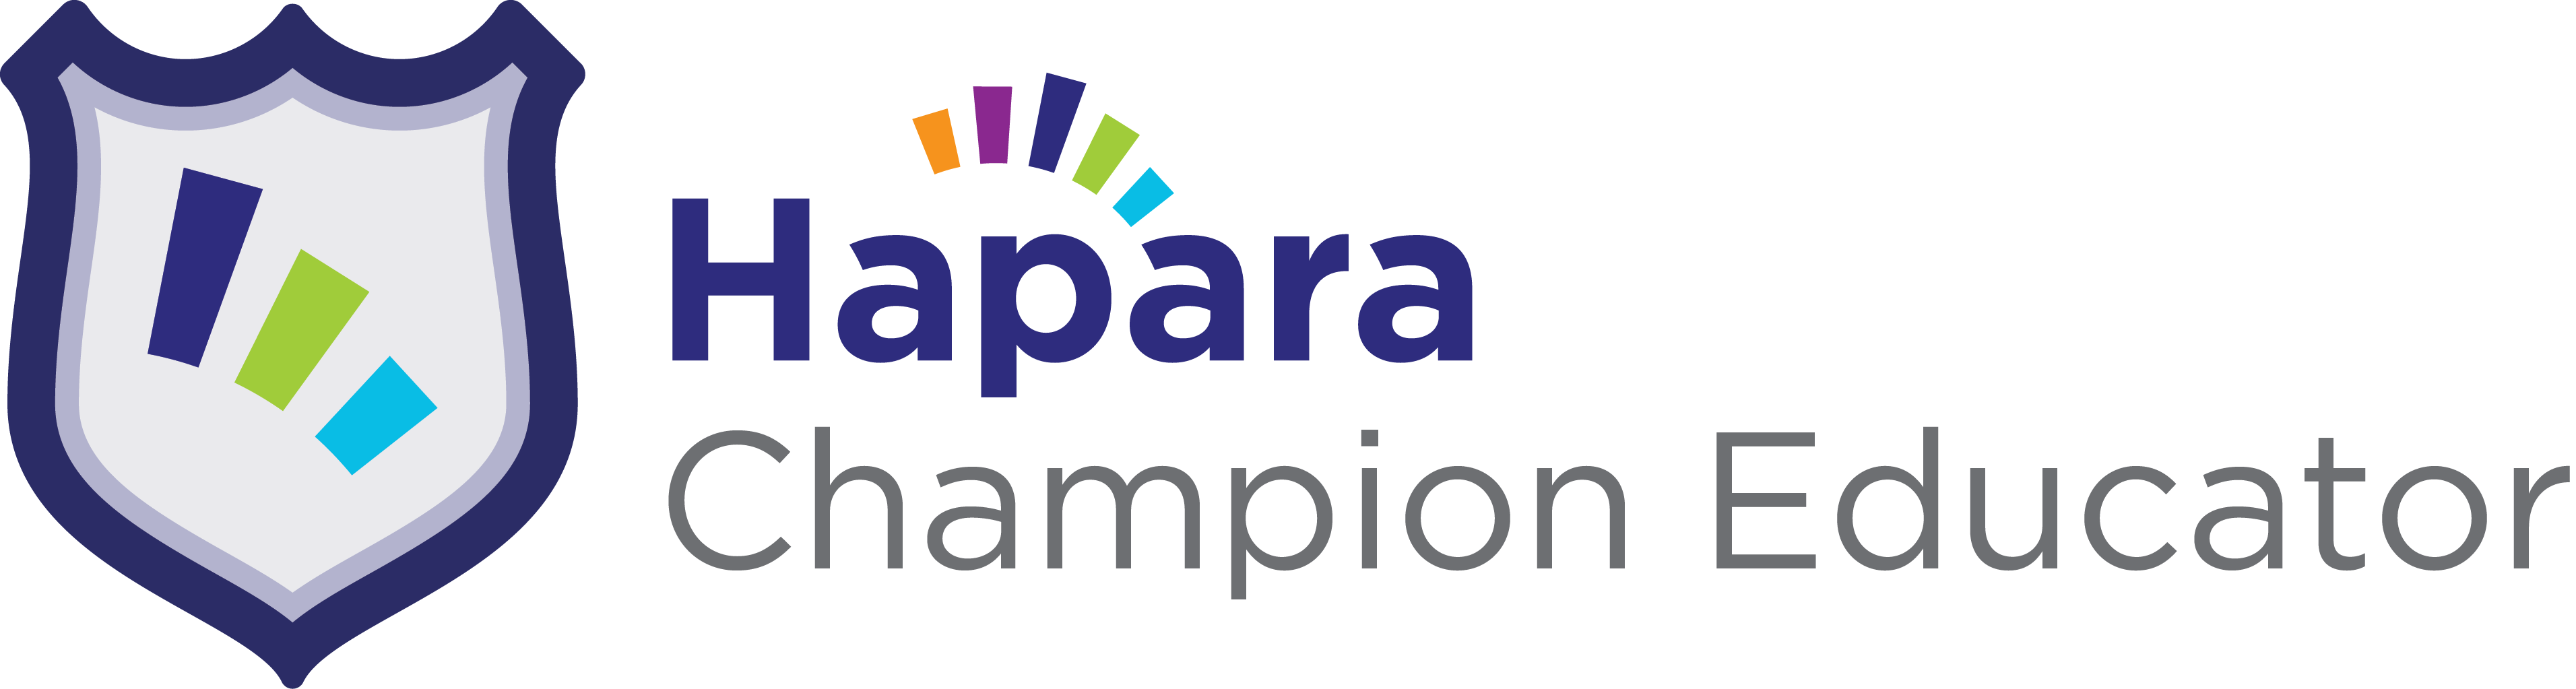 Hapara Champion Educator 1